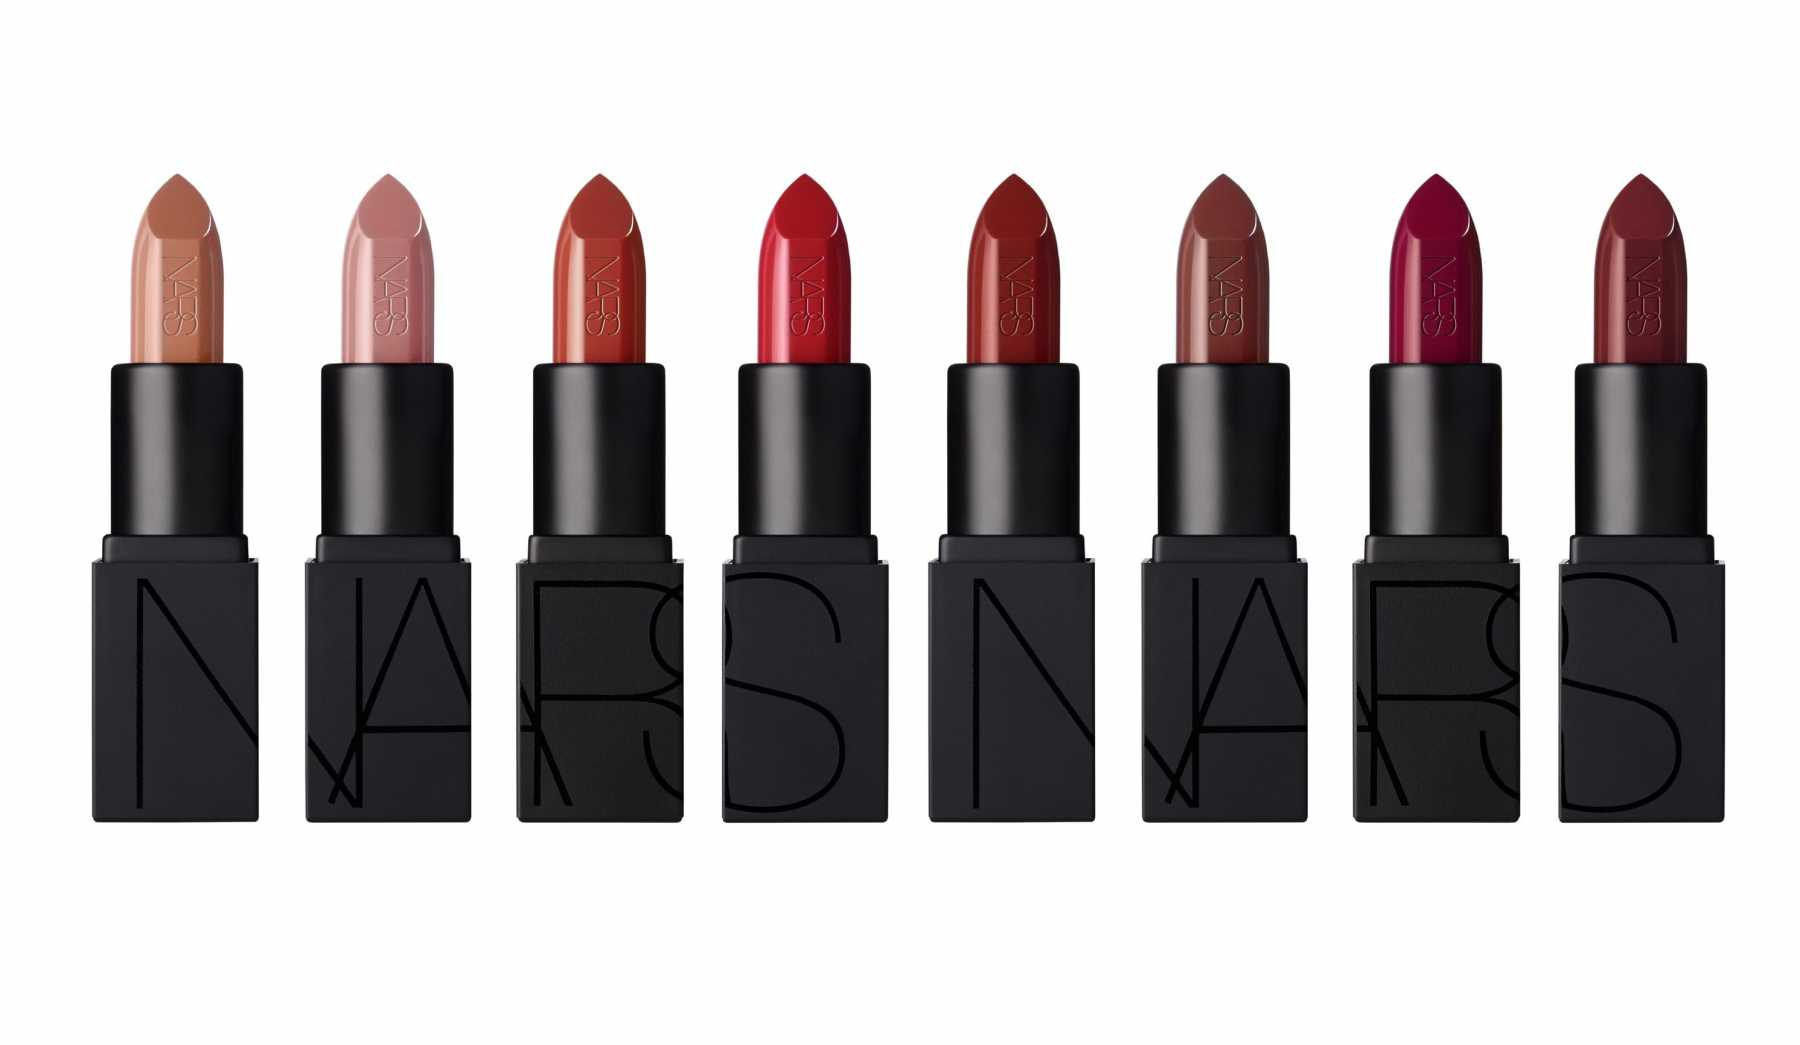 Nars Is No Long A Cruelty Free Brand | Nars